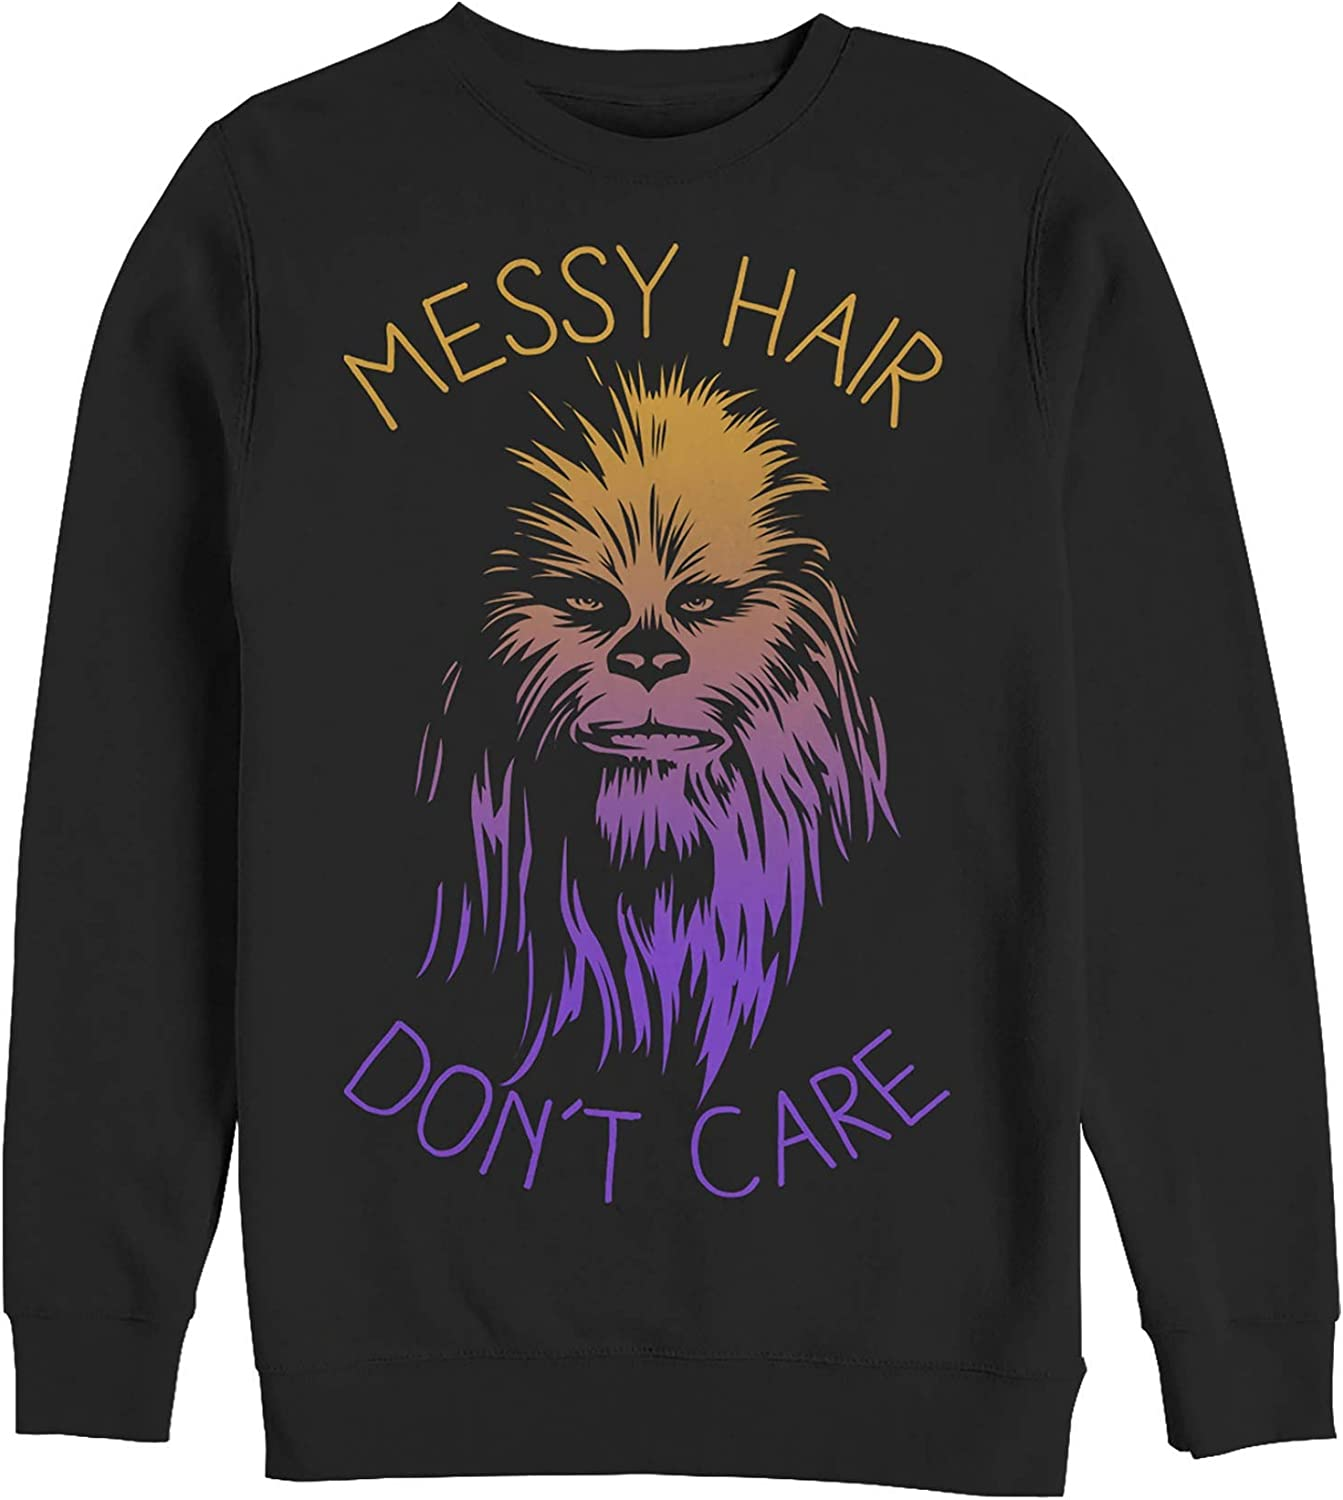 Star Wars Men's Messy Hair Don't Care Chewie Sweatshirt